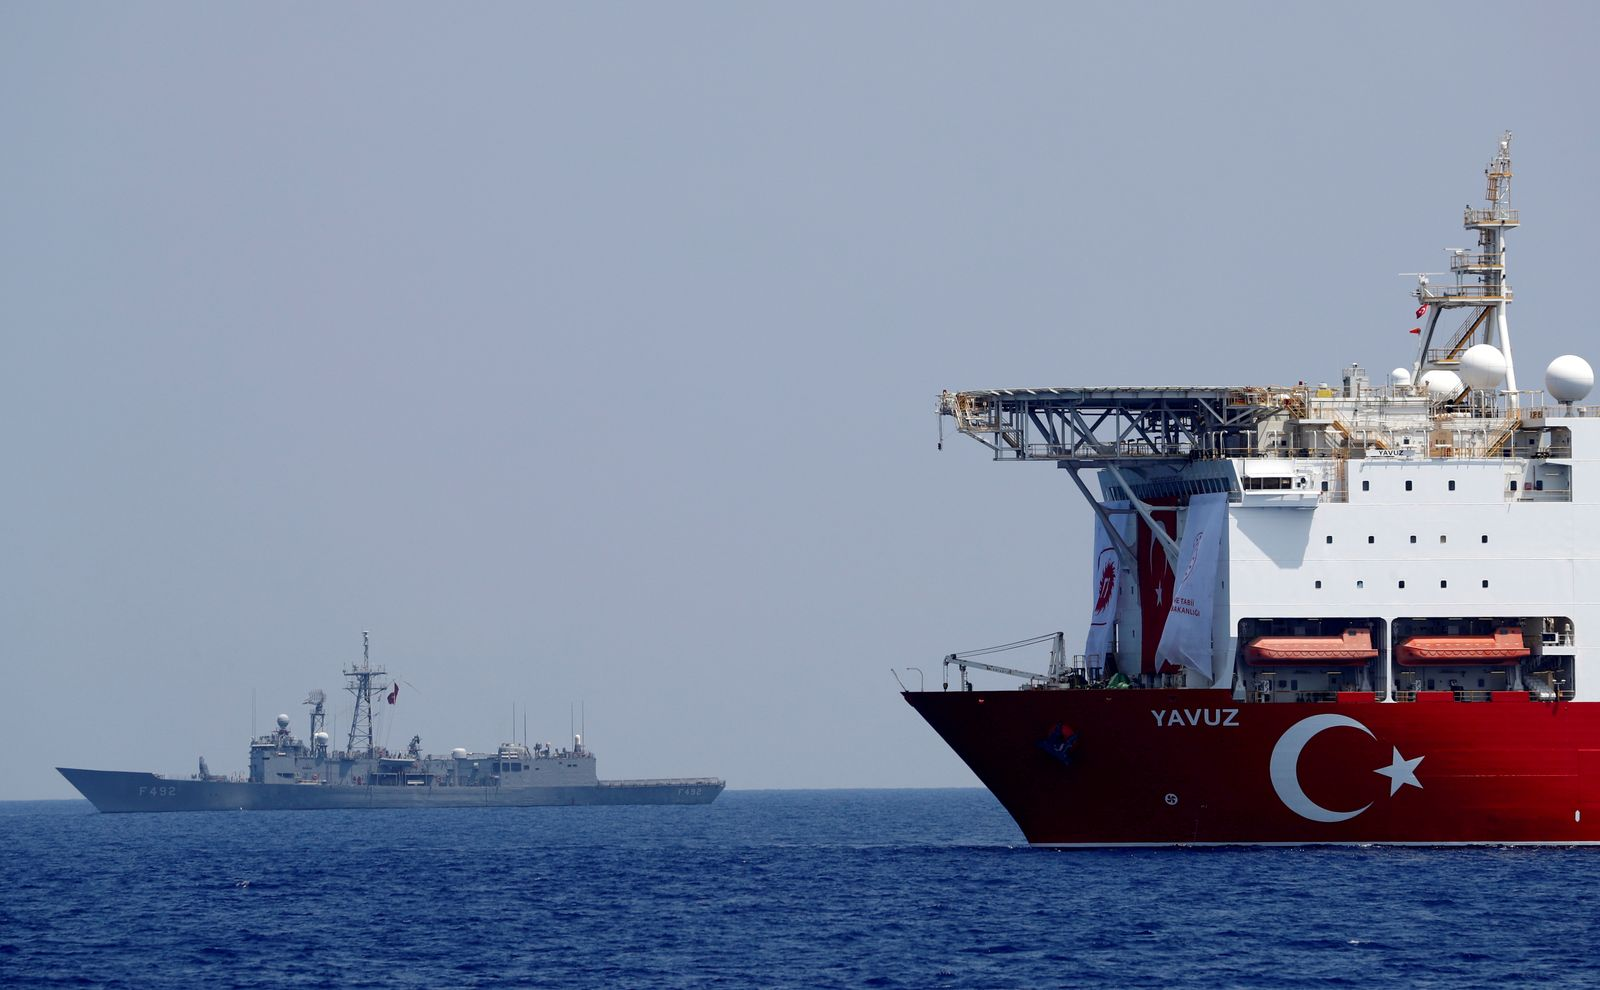 FILE PHOTO: The Turkish drilling vessel Yavuz is seen being escorted by a Turkish Navy frigate in the eastern Mediterranean off Cyprus